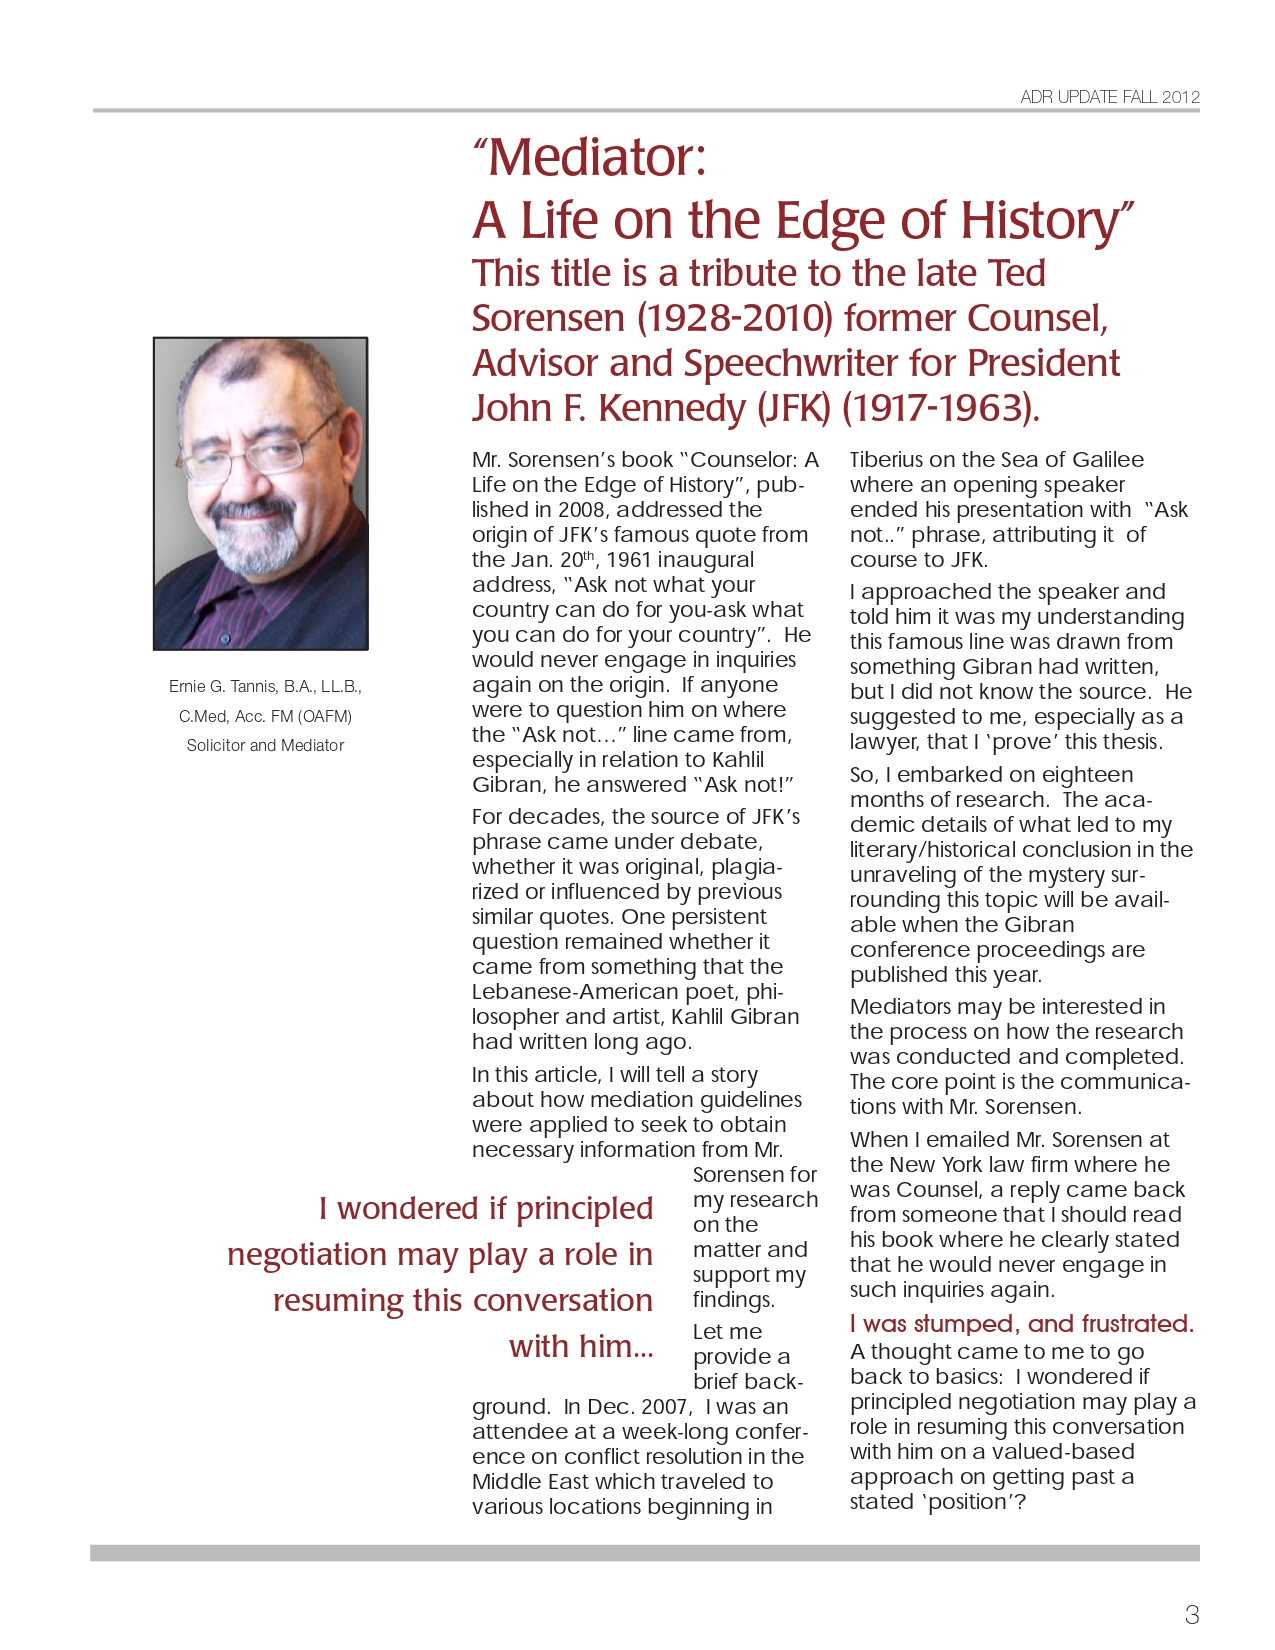 Ernie G. Tannis, Mediator: A Life on the Edge of History, ADR, Fall 2012, pp. 3-4.